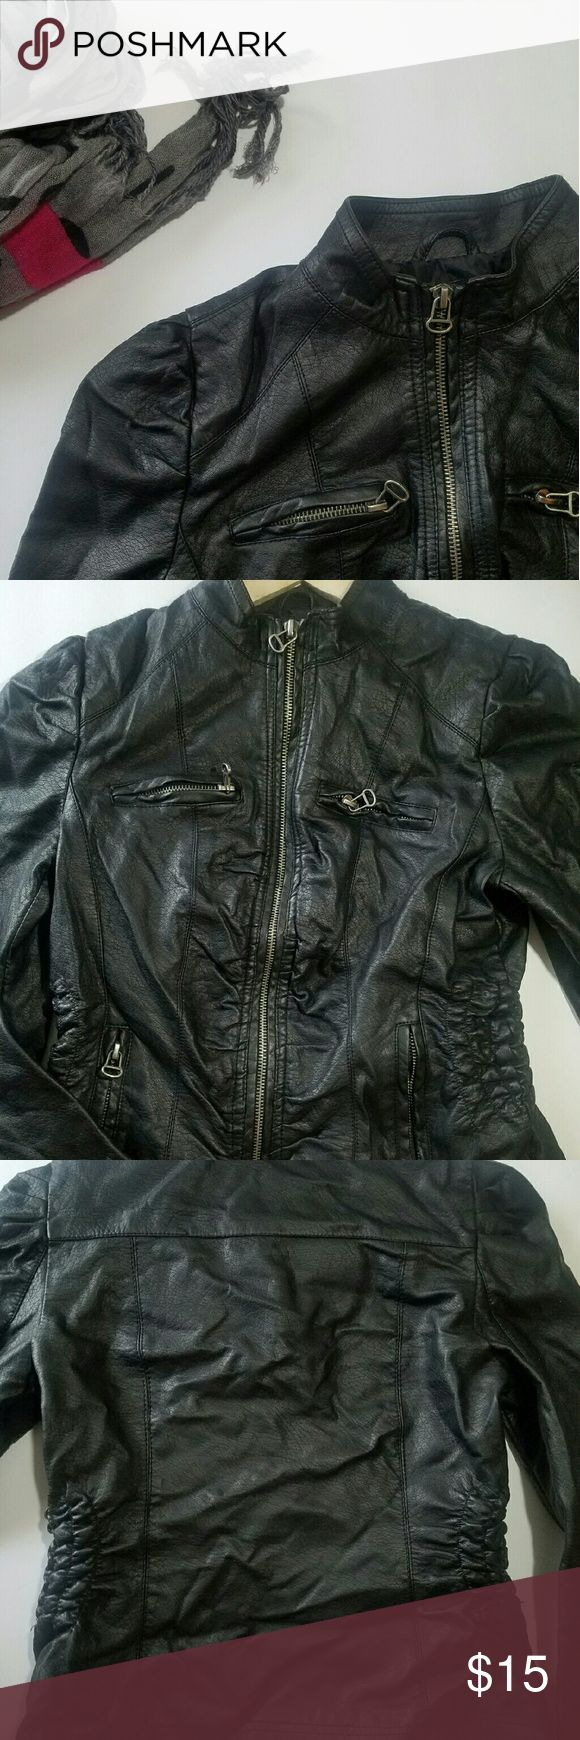 Vegan Leather Jacket This jacket is a wardrobe staple. Can be dressed up or down.  Please check out my closet for other fabulous items! Reasonable offers welcome. Jackets & Coats